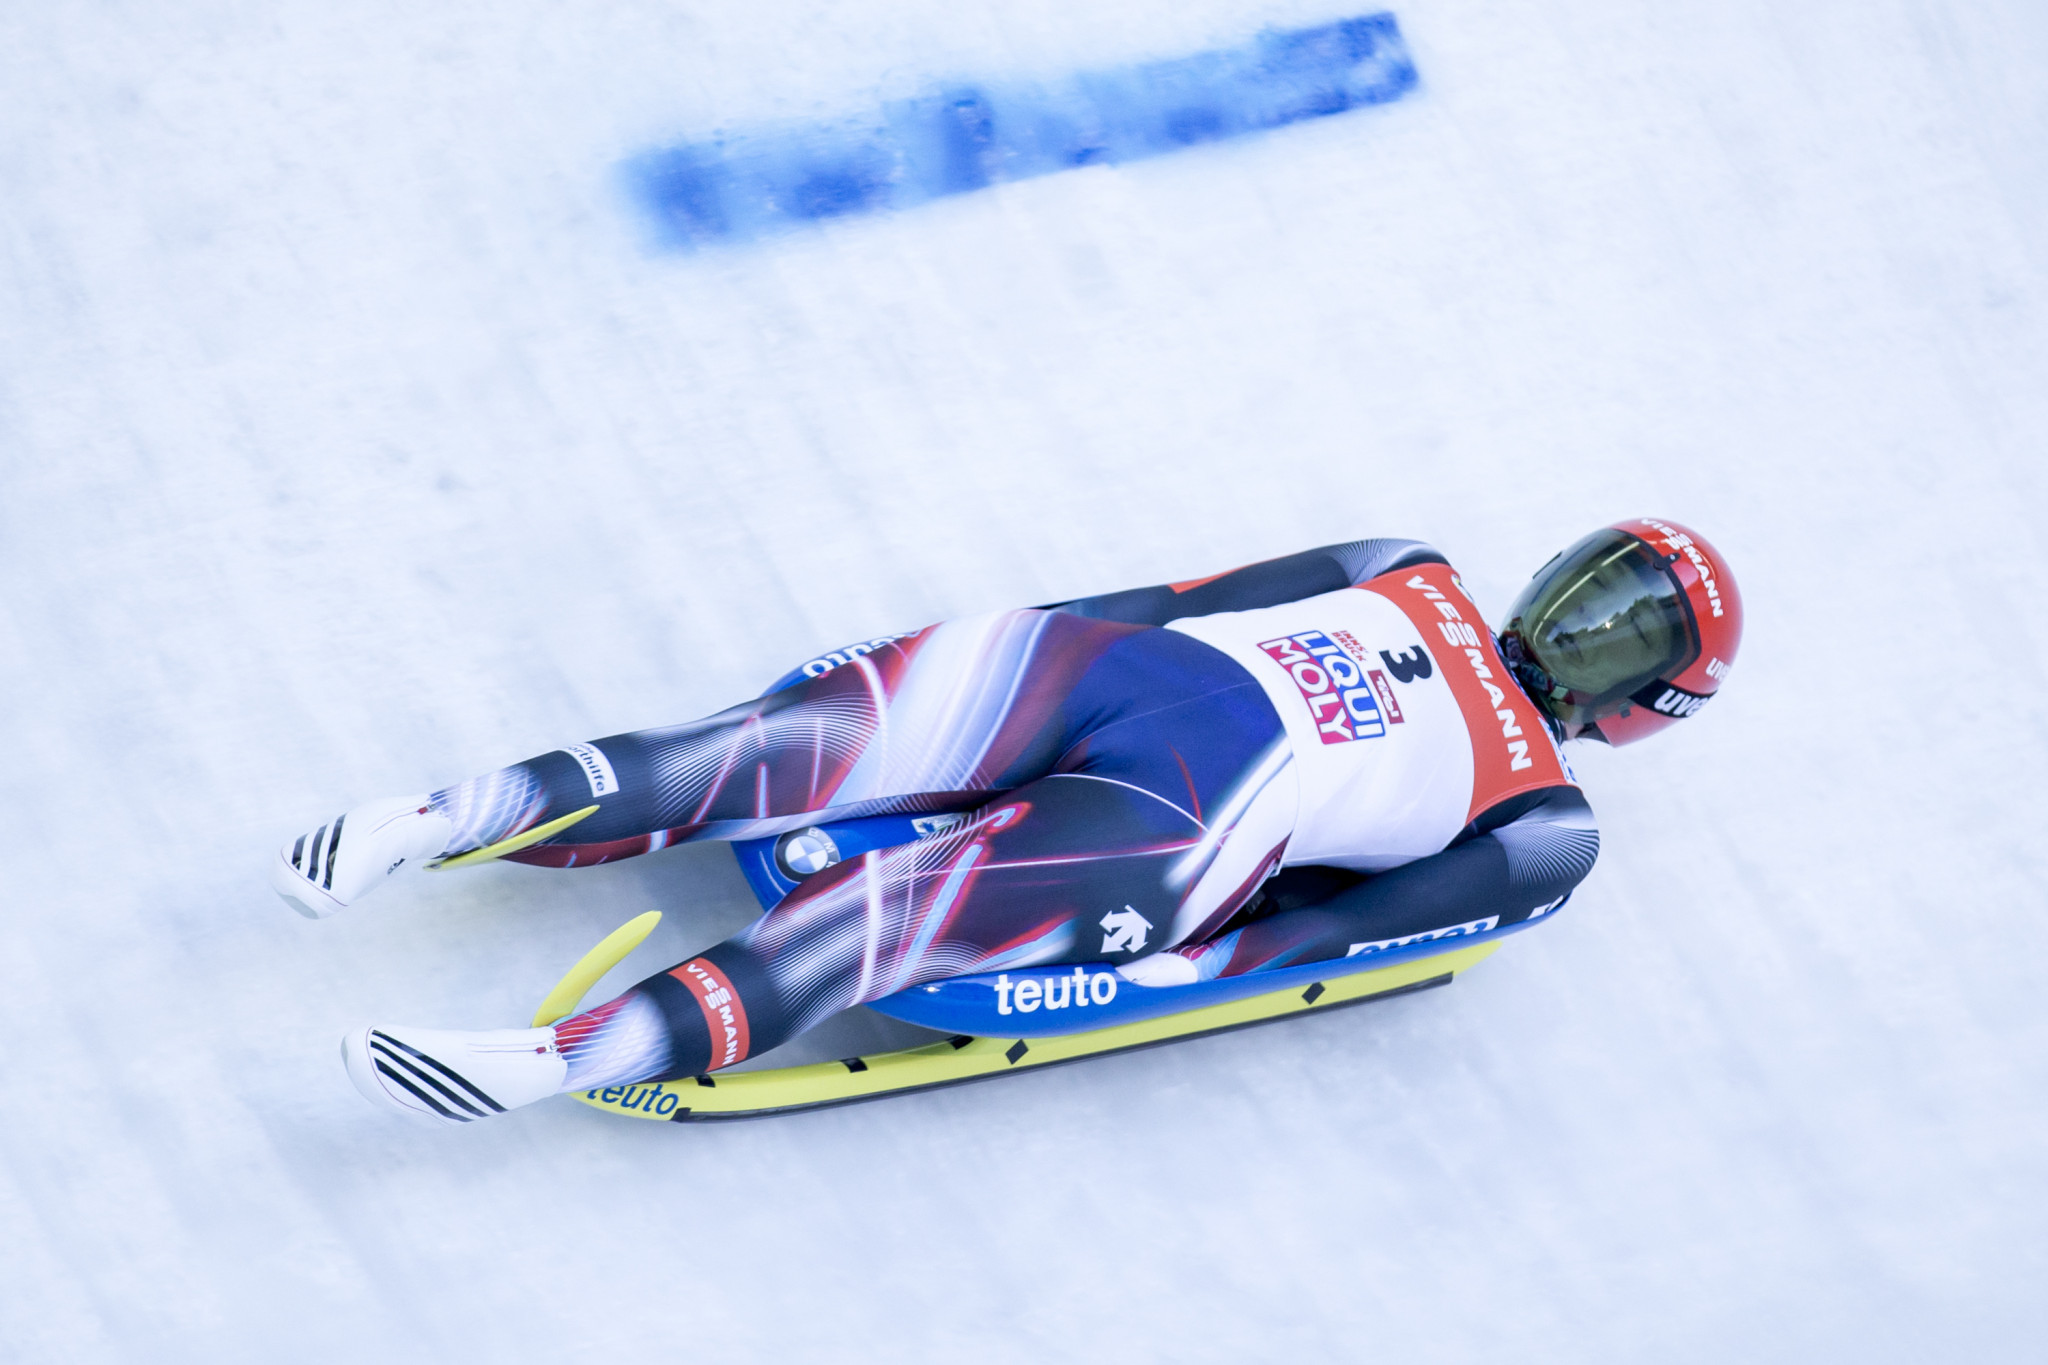 Tatjana Huefner, of Germany, finished second as the Germans dominated on their home slopes ©Getty Images